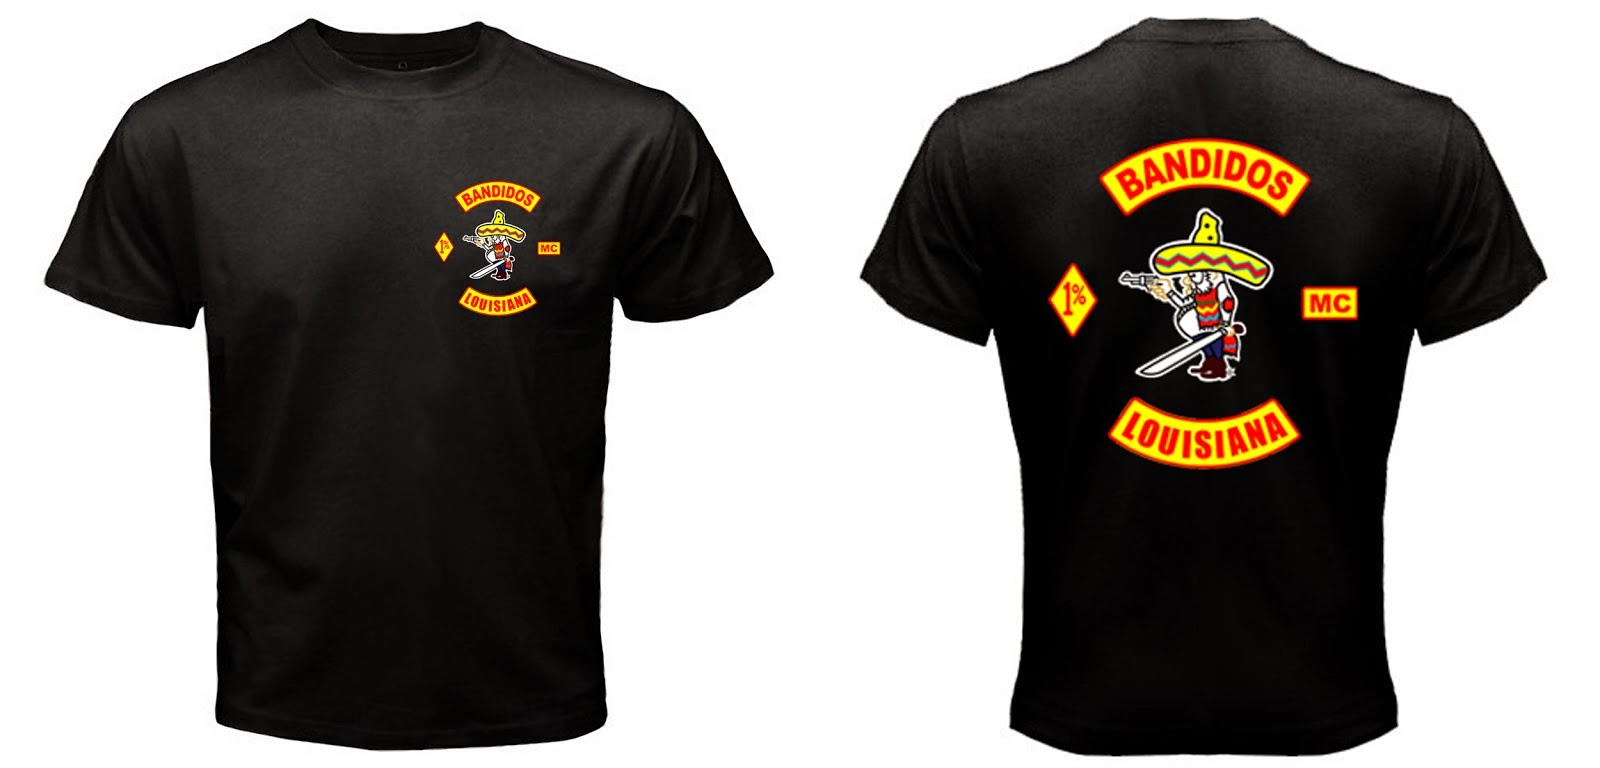 Bandidos Louisiana MC Black T-shirt Double  Side